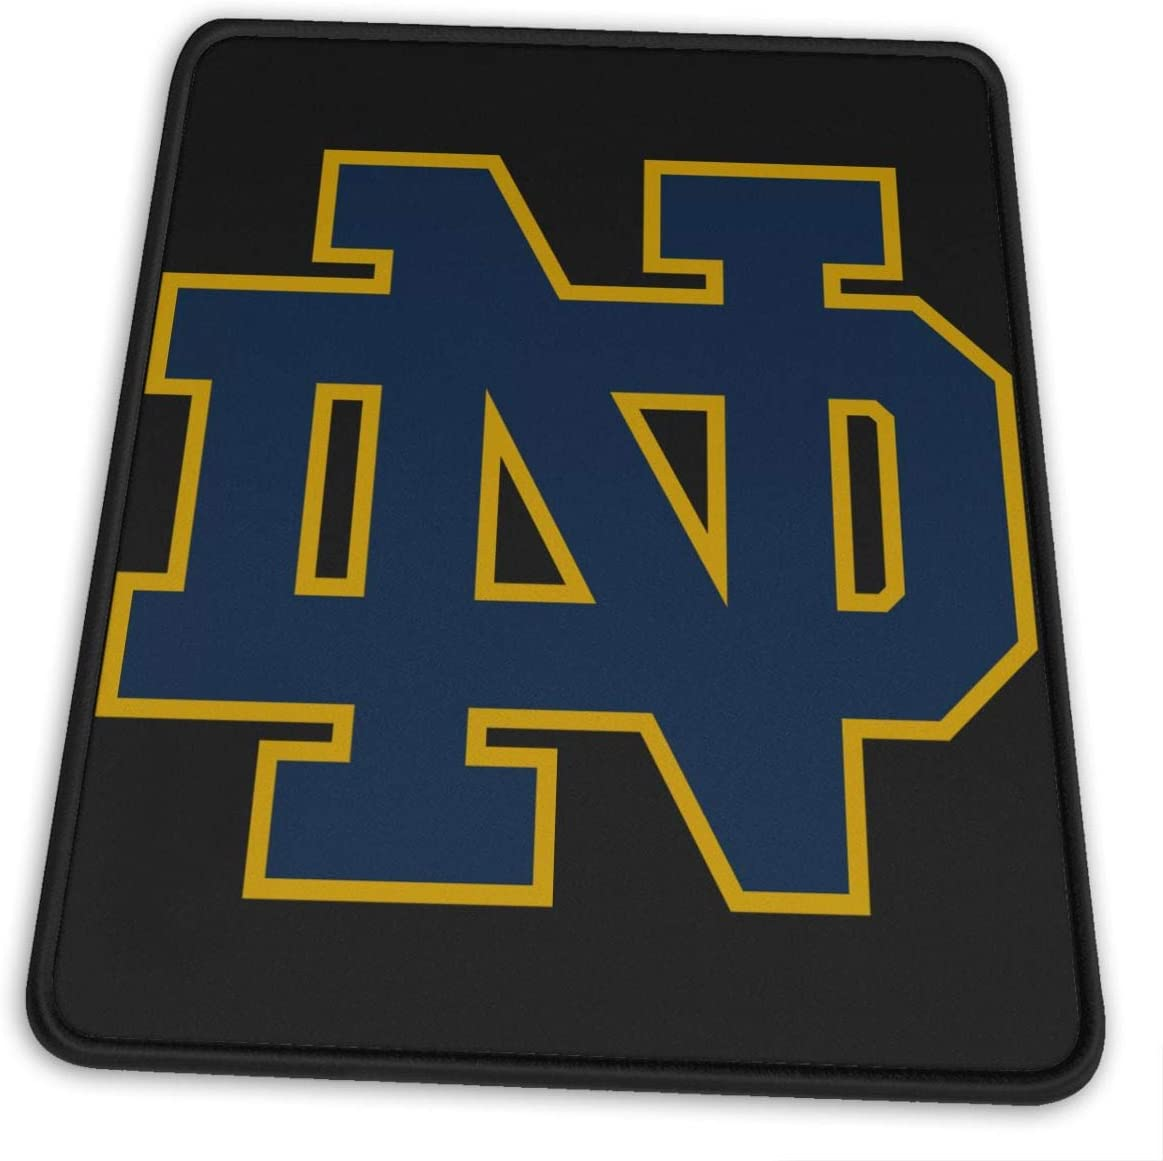 University of Notre Dame Nd Logo Comfortable and Wearable Rubber Computer Mouse Pad Precision Locking Non-Slip for Laptop Office Home Game